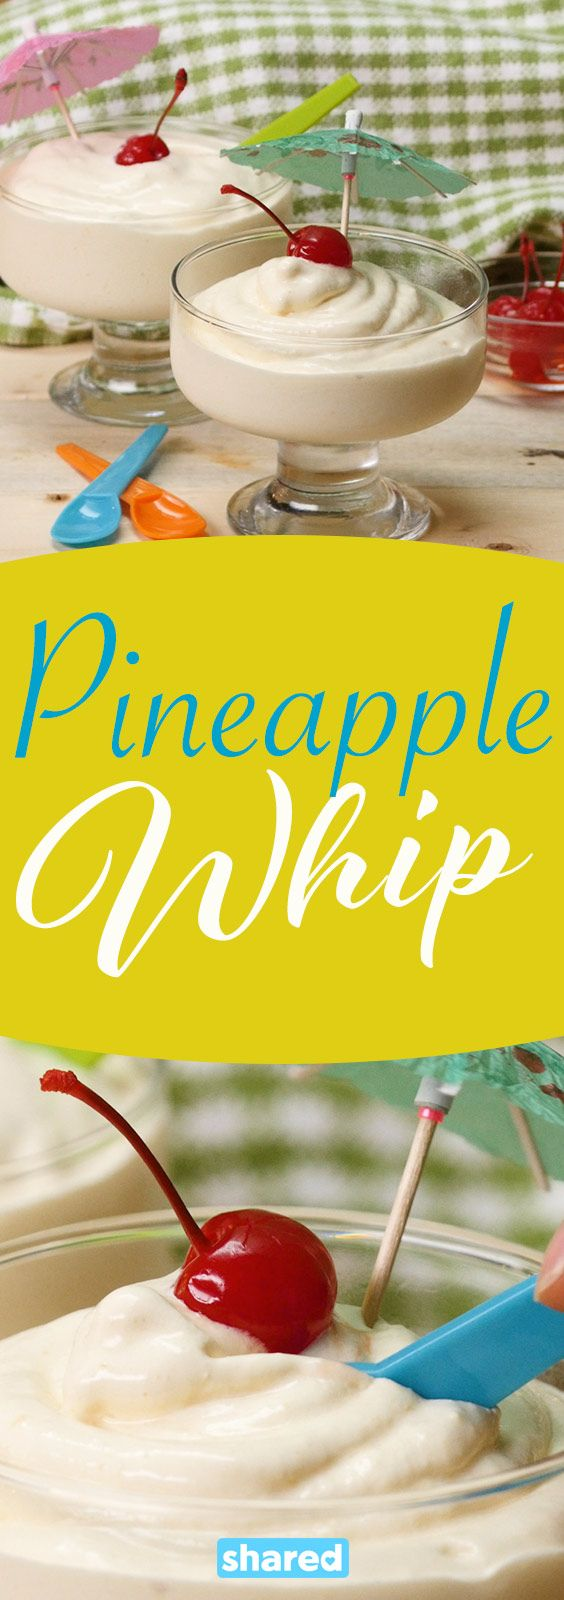 This pineapple whip has everything you need to cool off this summer, tropical flavor and a creamy ice cream texture! Make sure to make enough for seconds, because everyone will be asking for more.